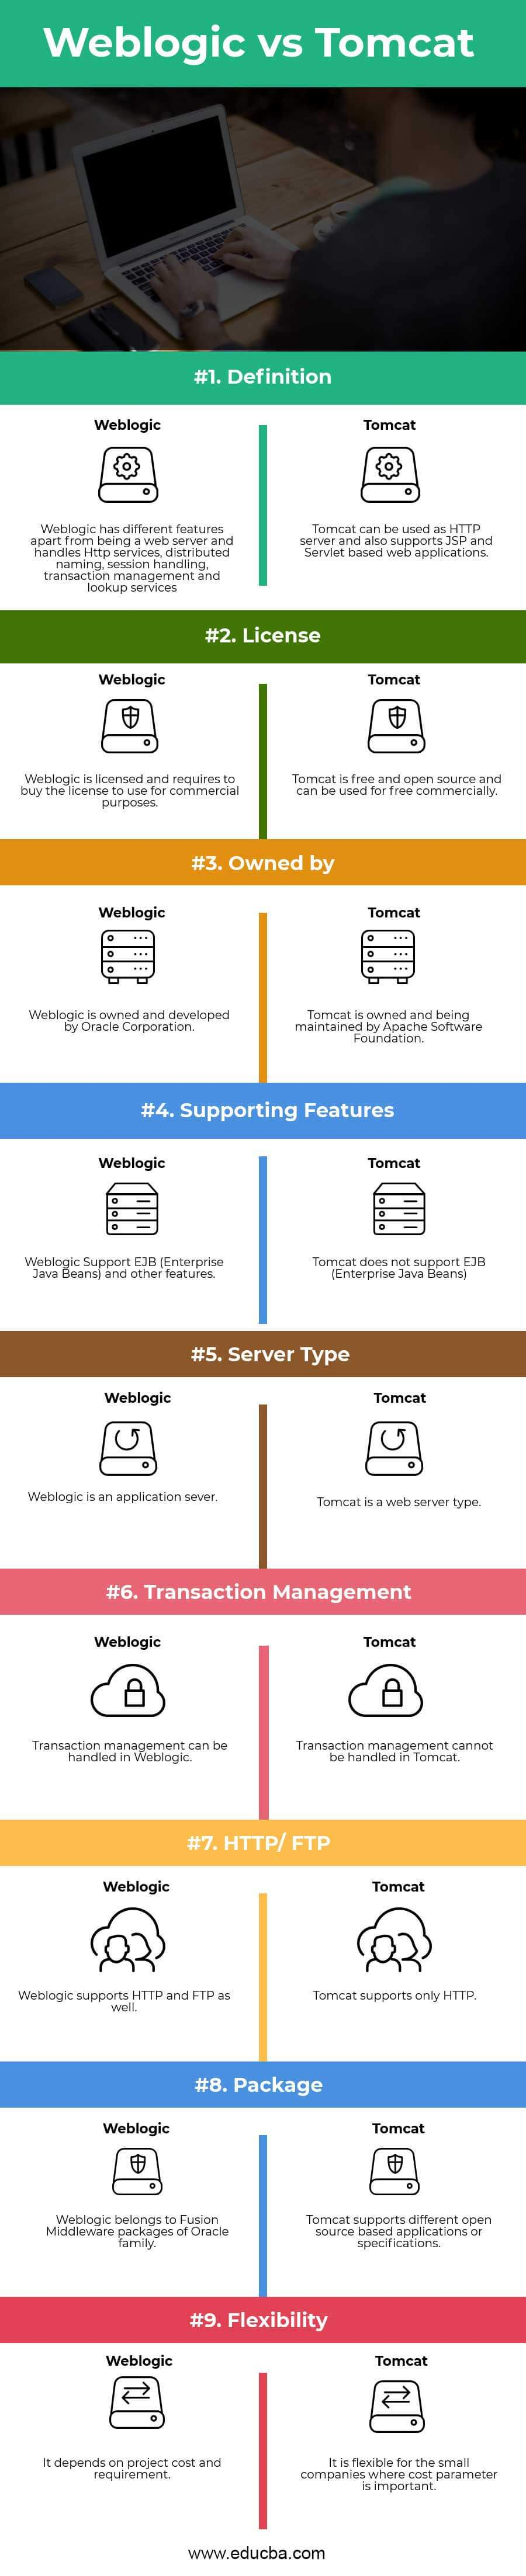 Weblogic vs Tomcat | Find Out The 9 Best Differences